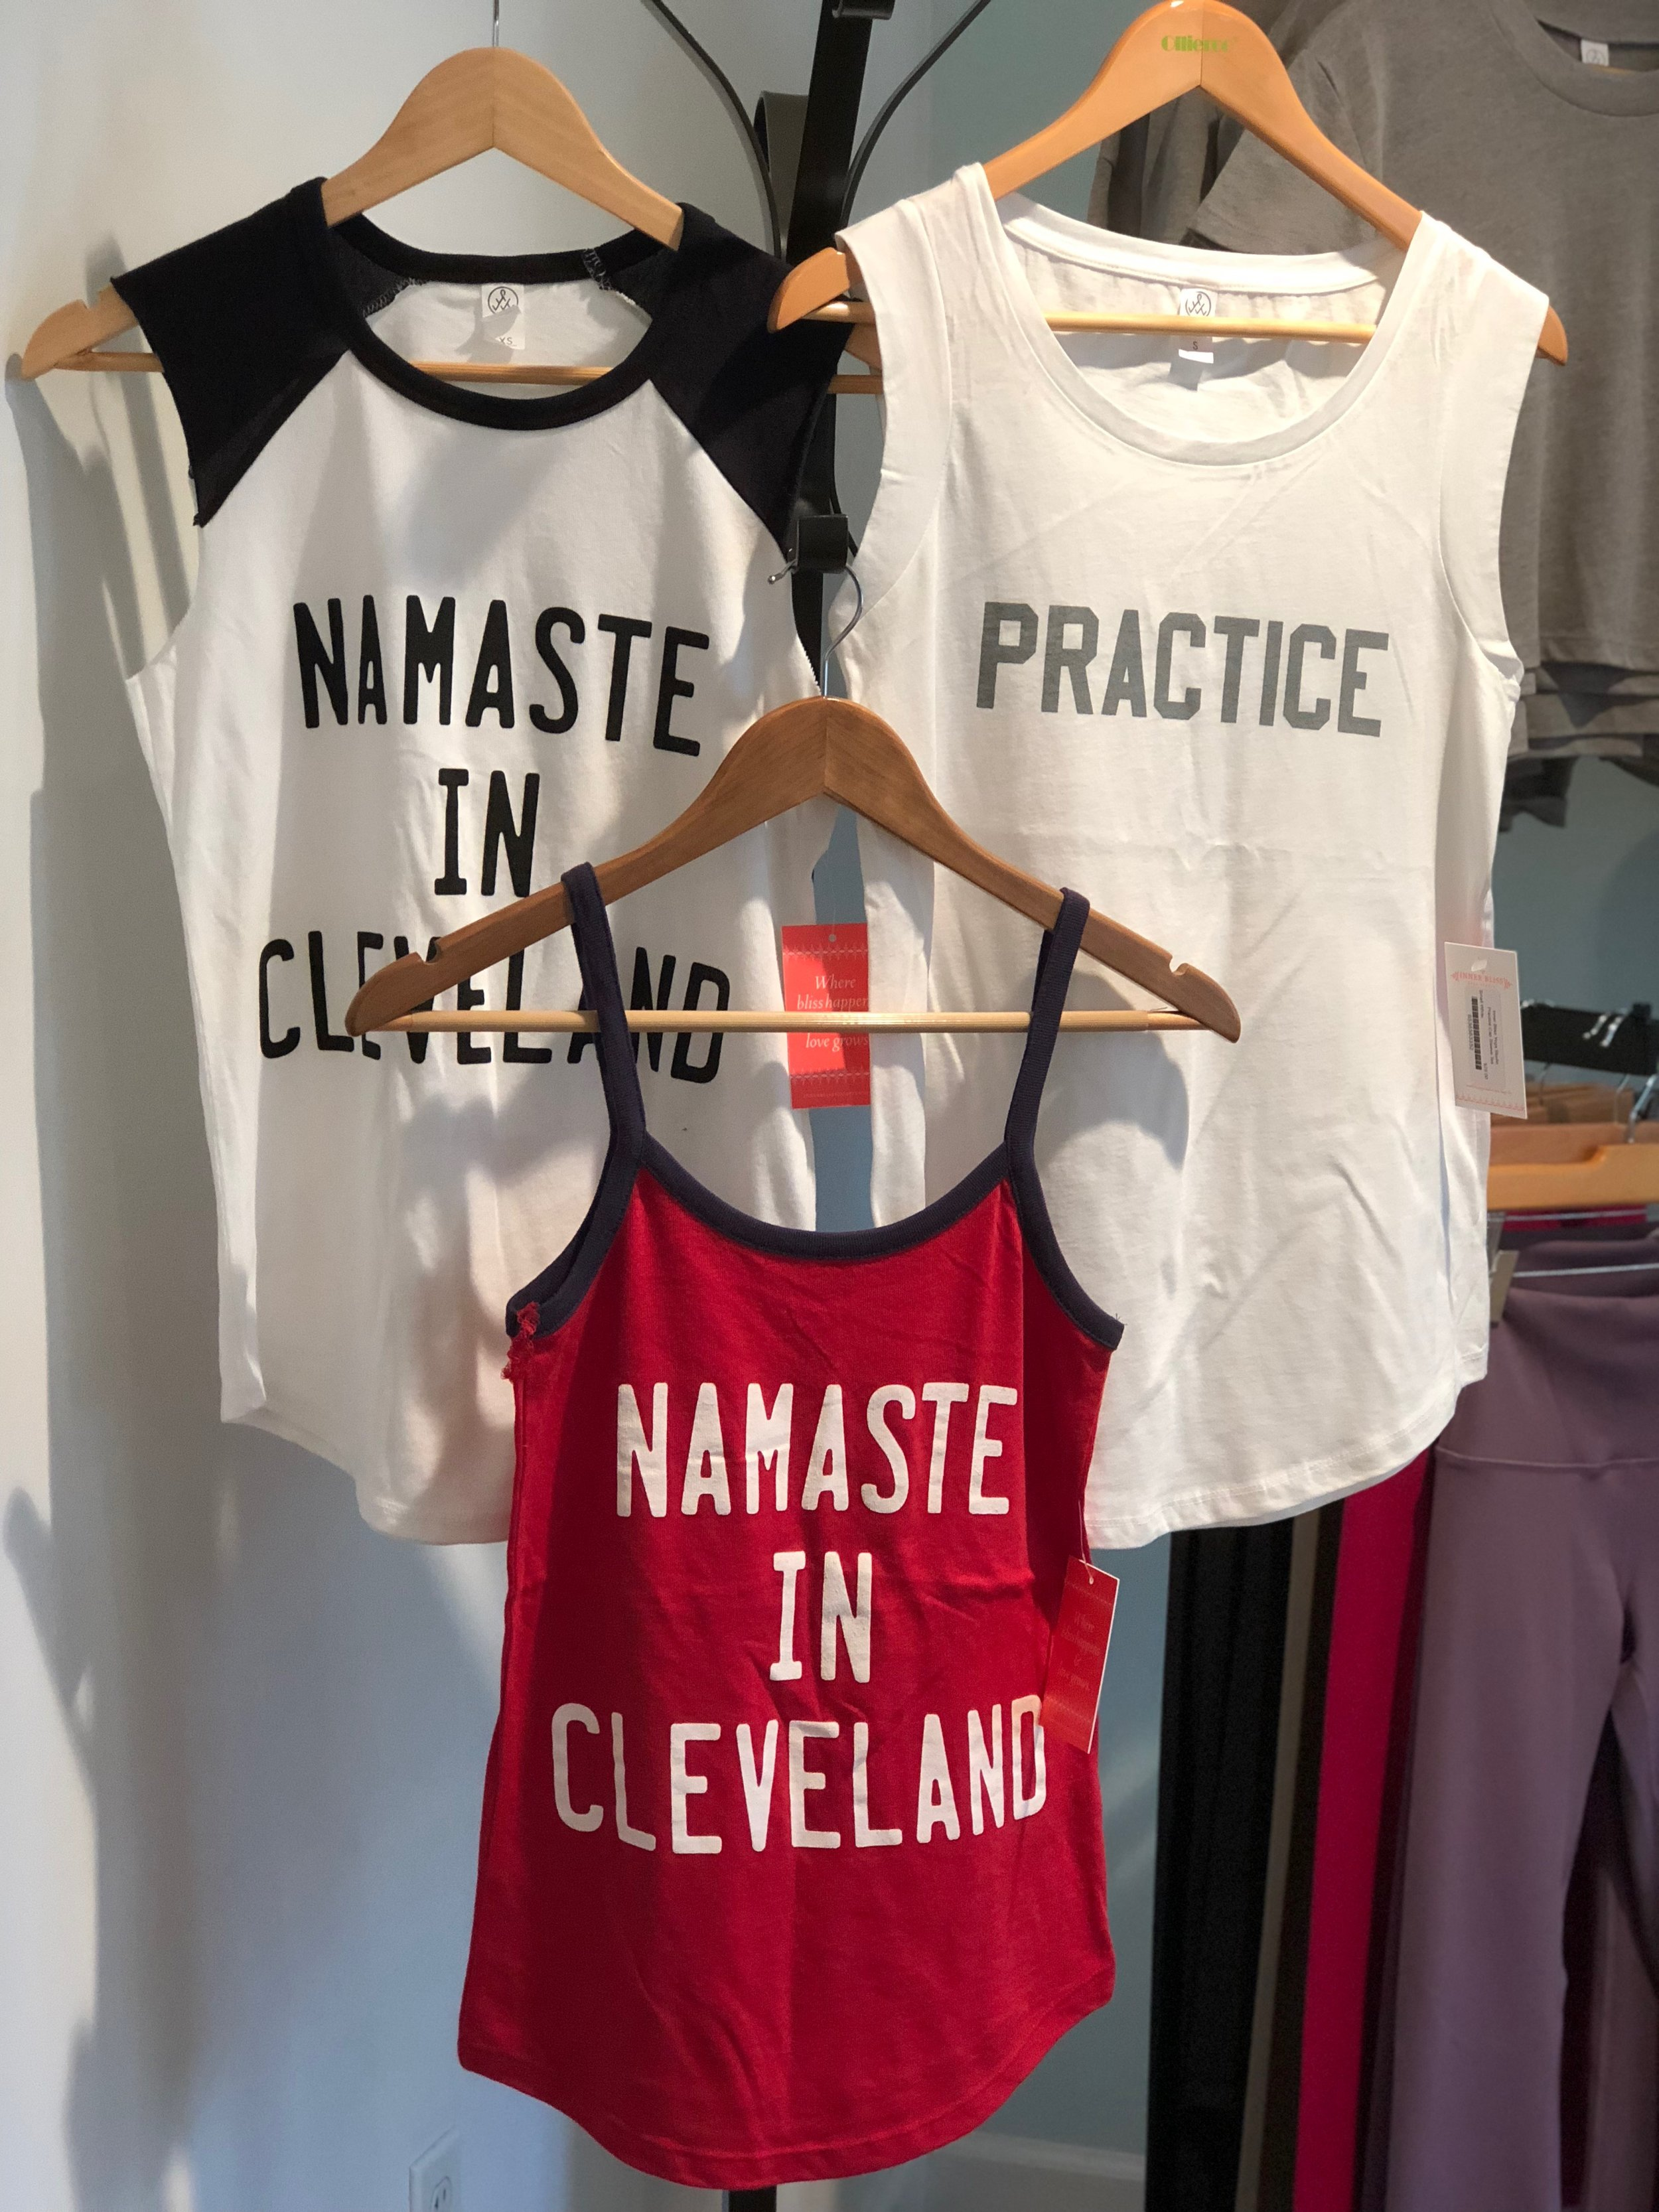 Practice White Cap Sleeve Tee $29, amaste in Cleveland Ringer Cami $26